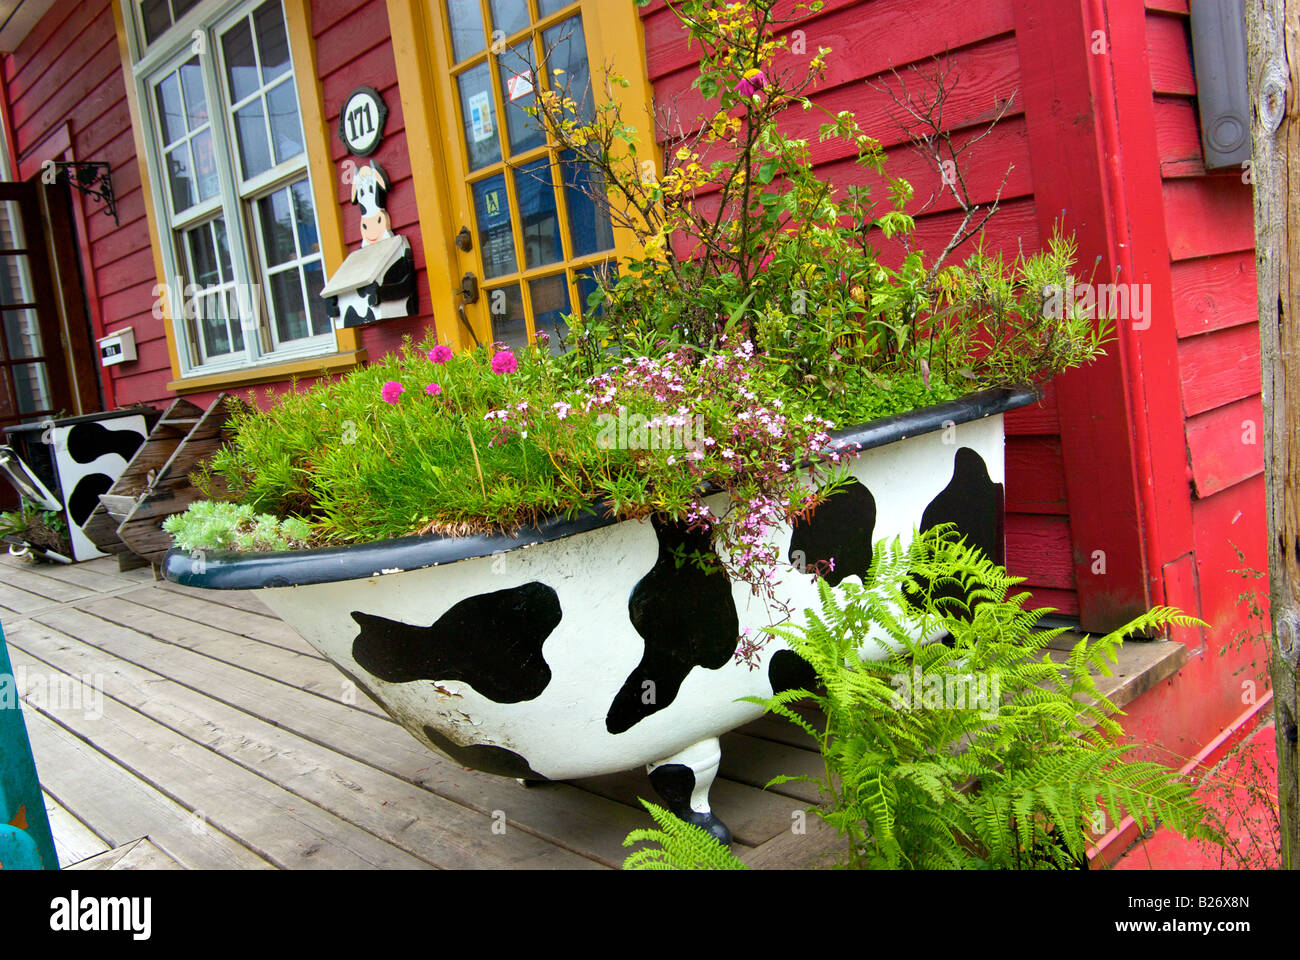 Funky Cow Theme Decor On Old Claw Foot Bathtub Flower Planter In Front Of  Store In Cow Bay In Prince Rupert